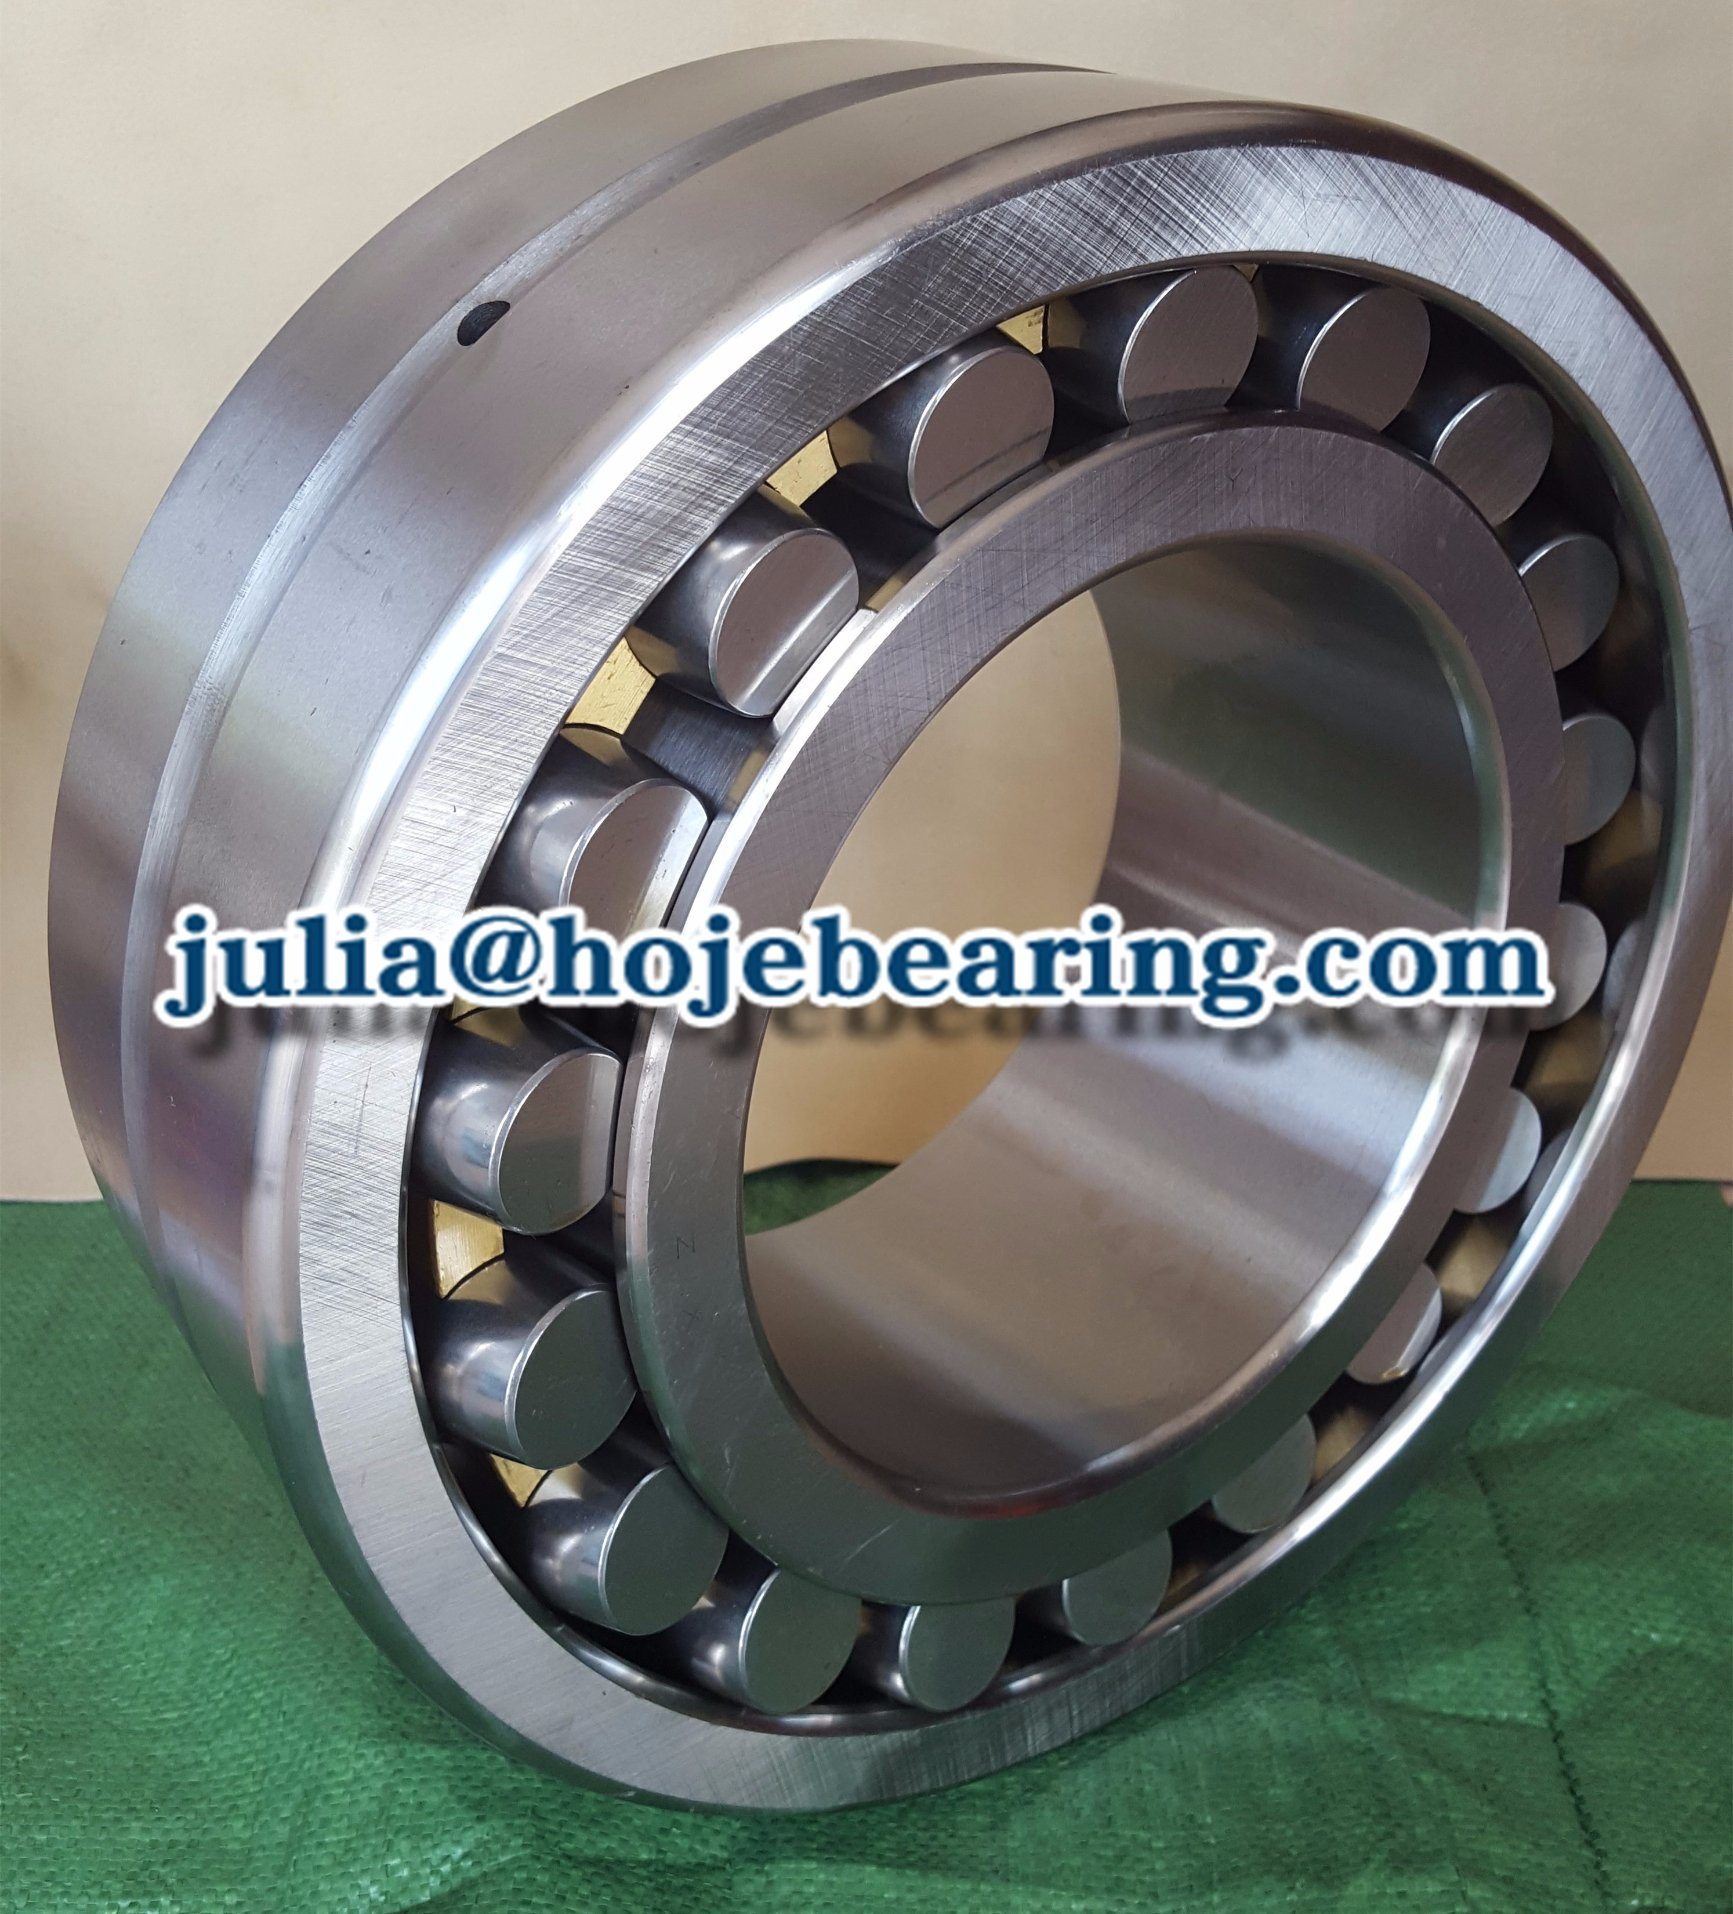 21314 Spherical Bearing Catalog Hot Selling Spherical Roller Bearing 21314